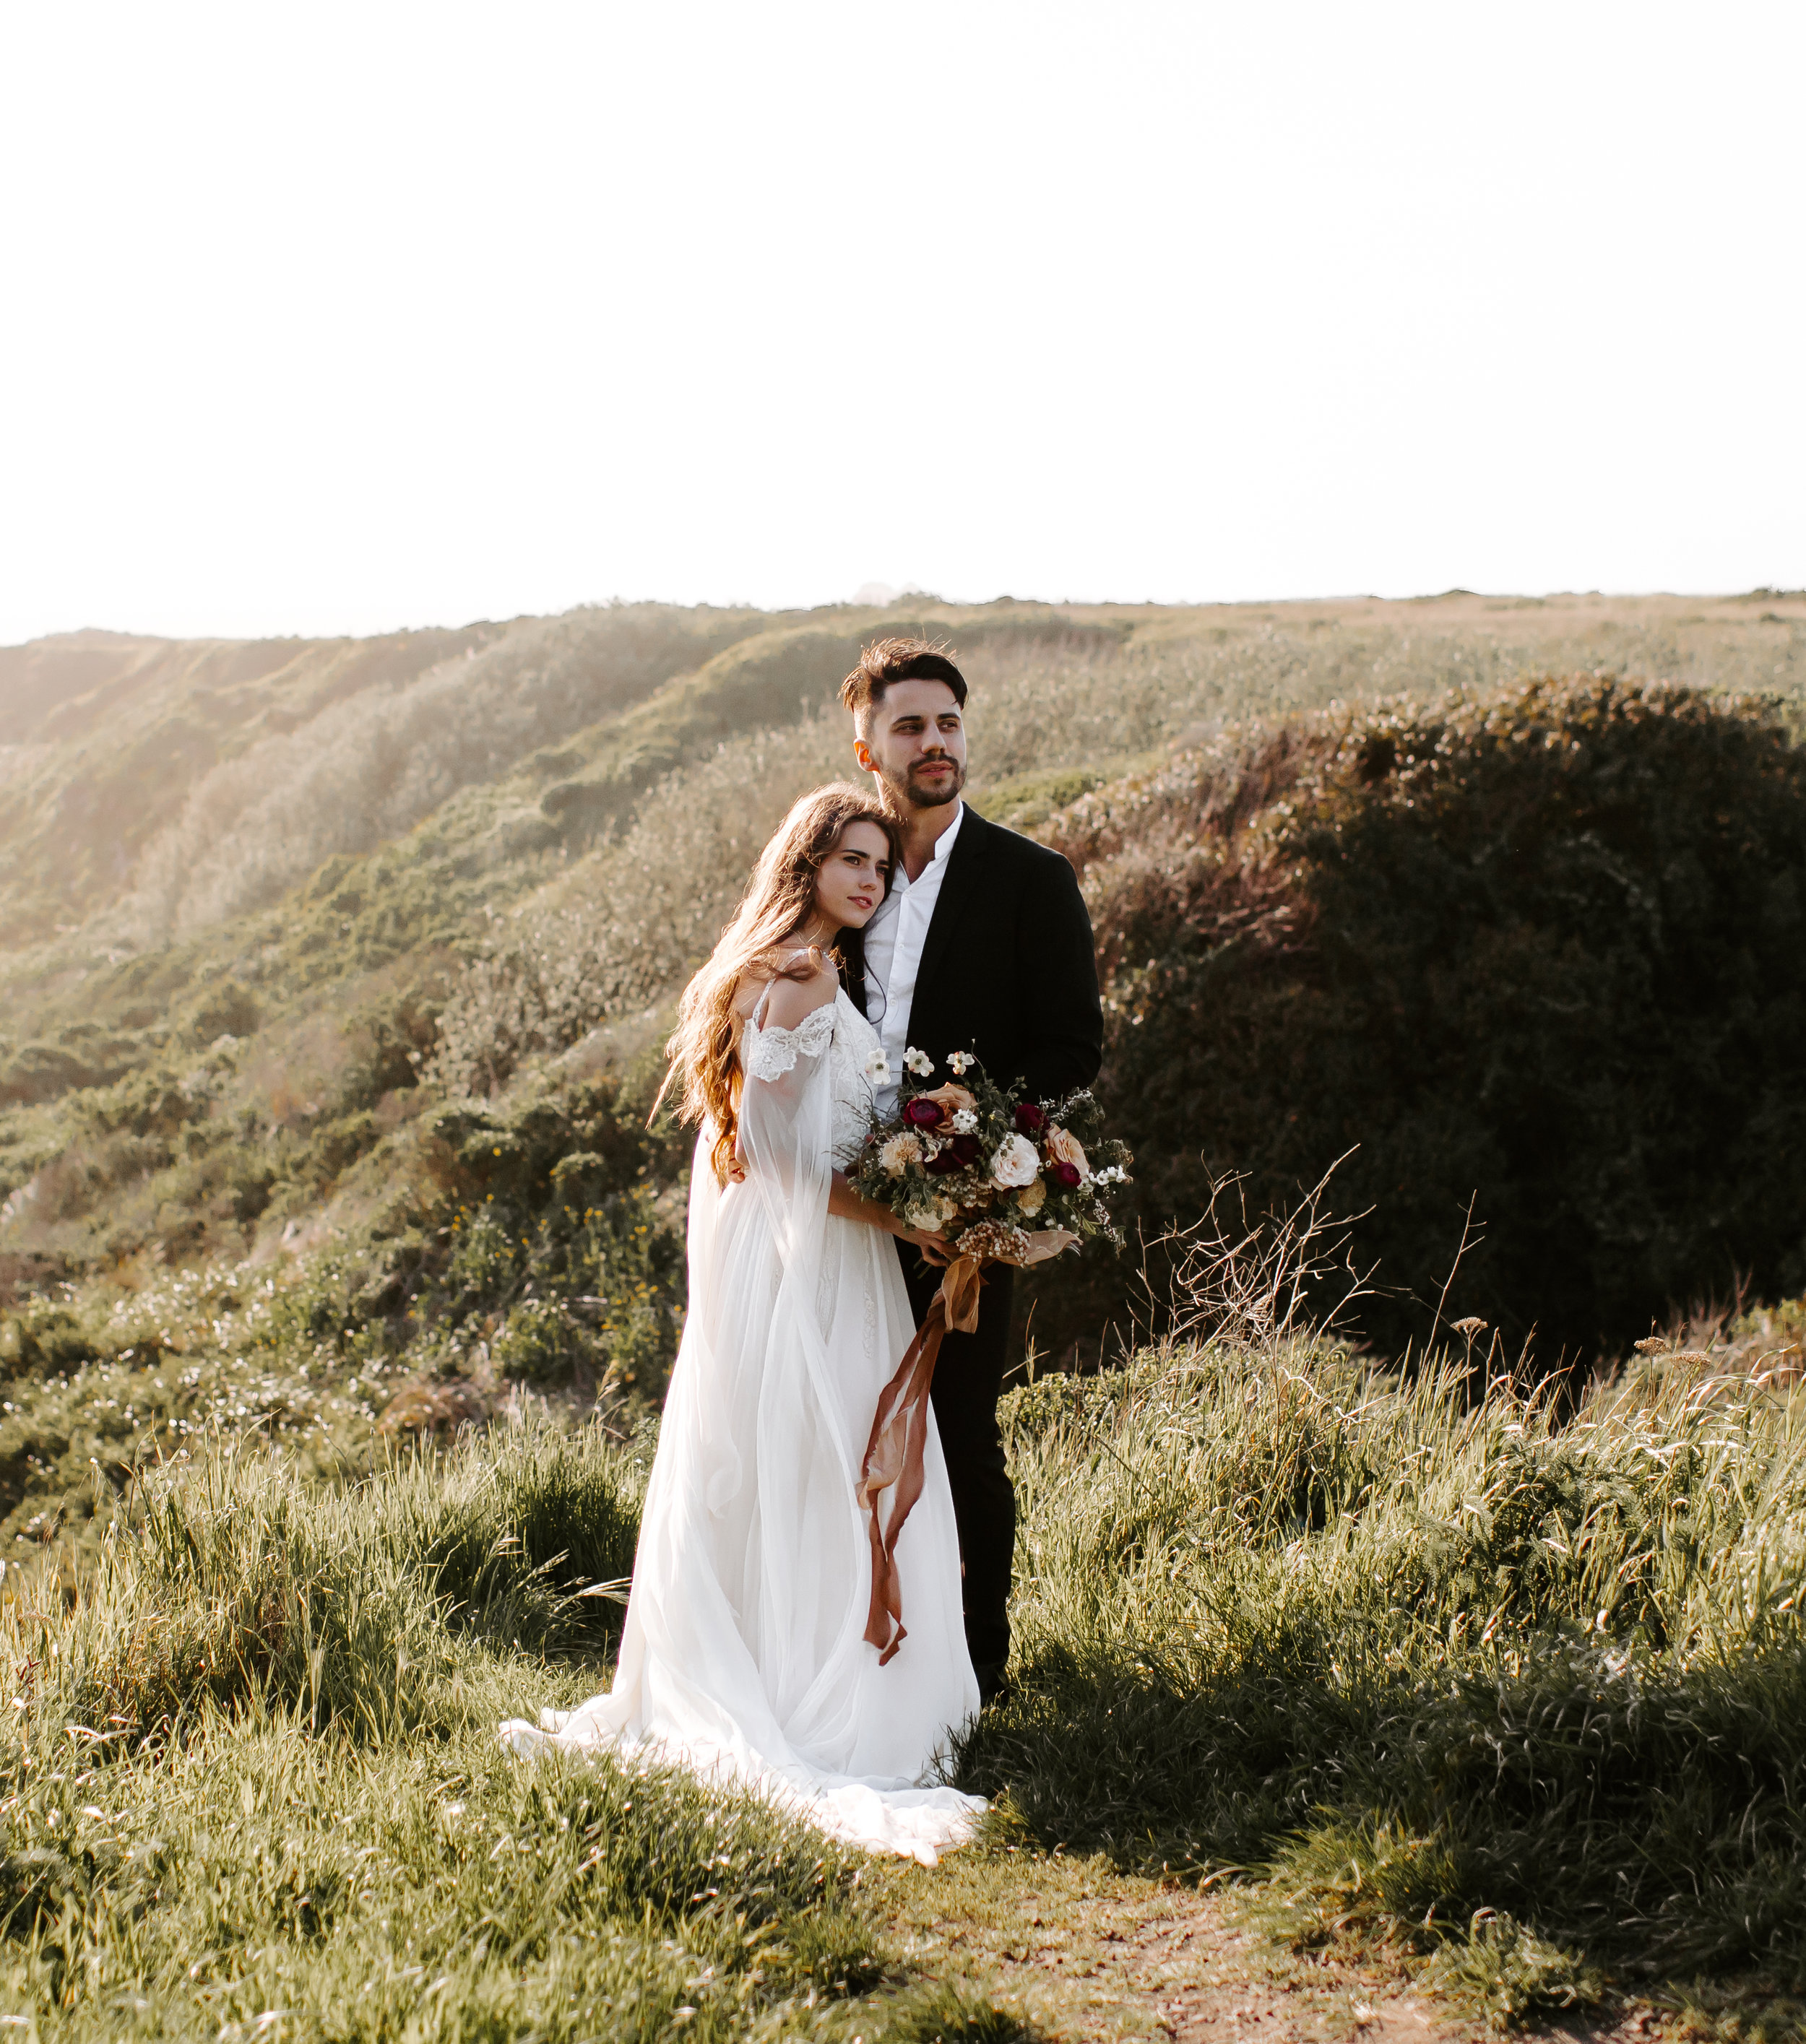 NorthernCaliforniaElopement_2.jpg